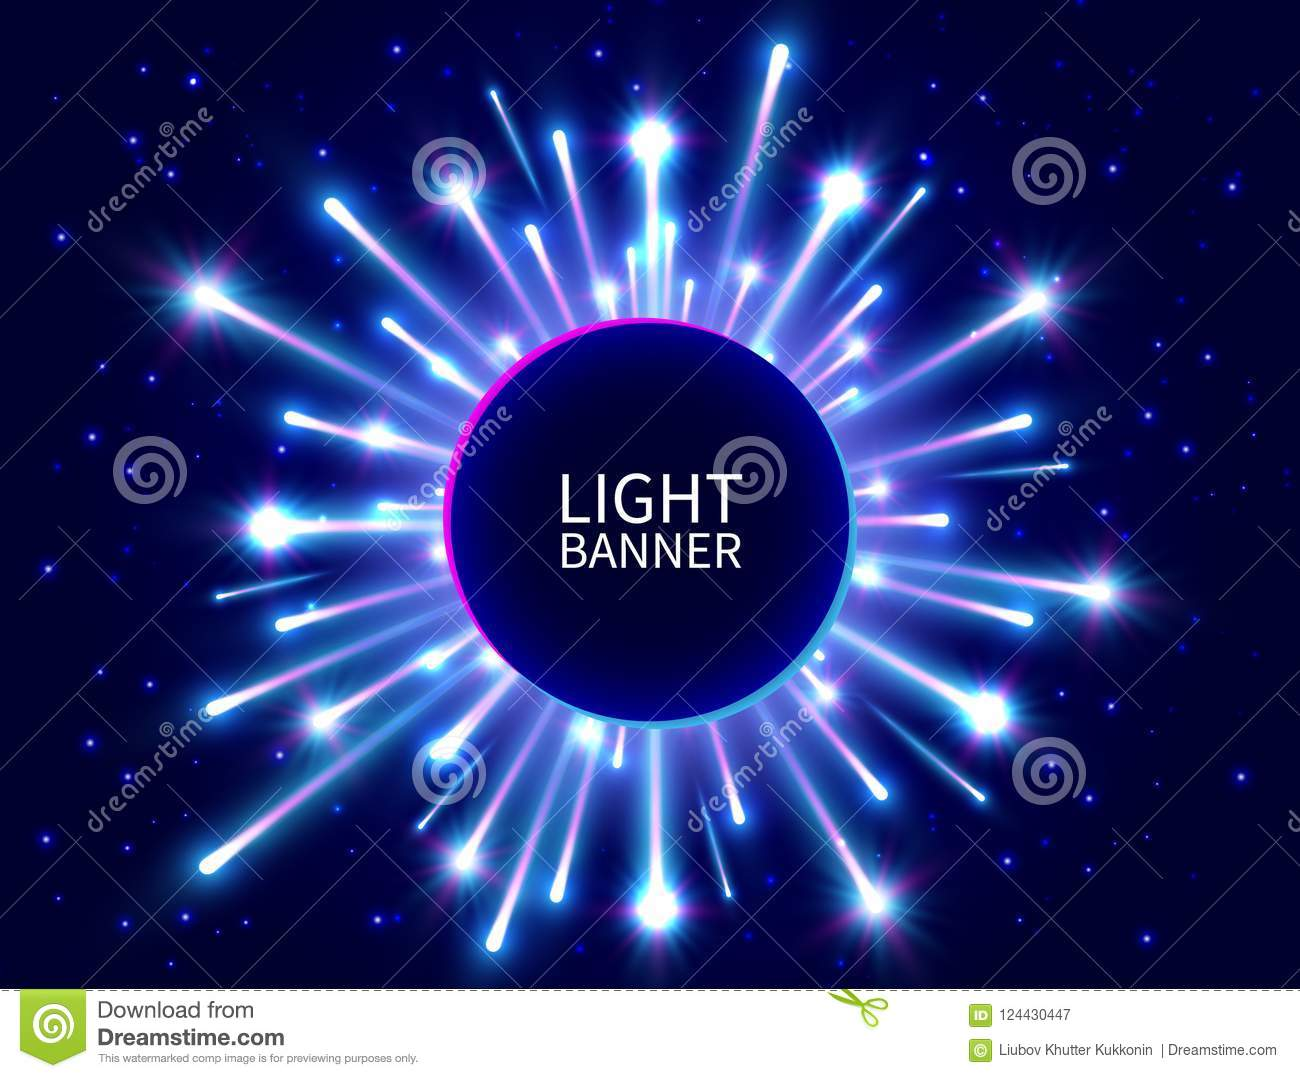 Colorful light banner with glowing rays. Shining neon circle banner. Bright firework. Blue star burst. New Year background. Vector